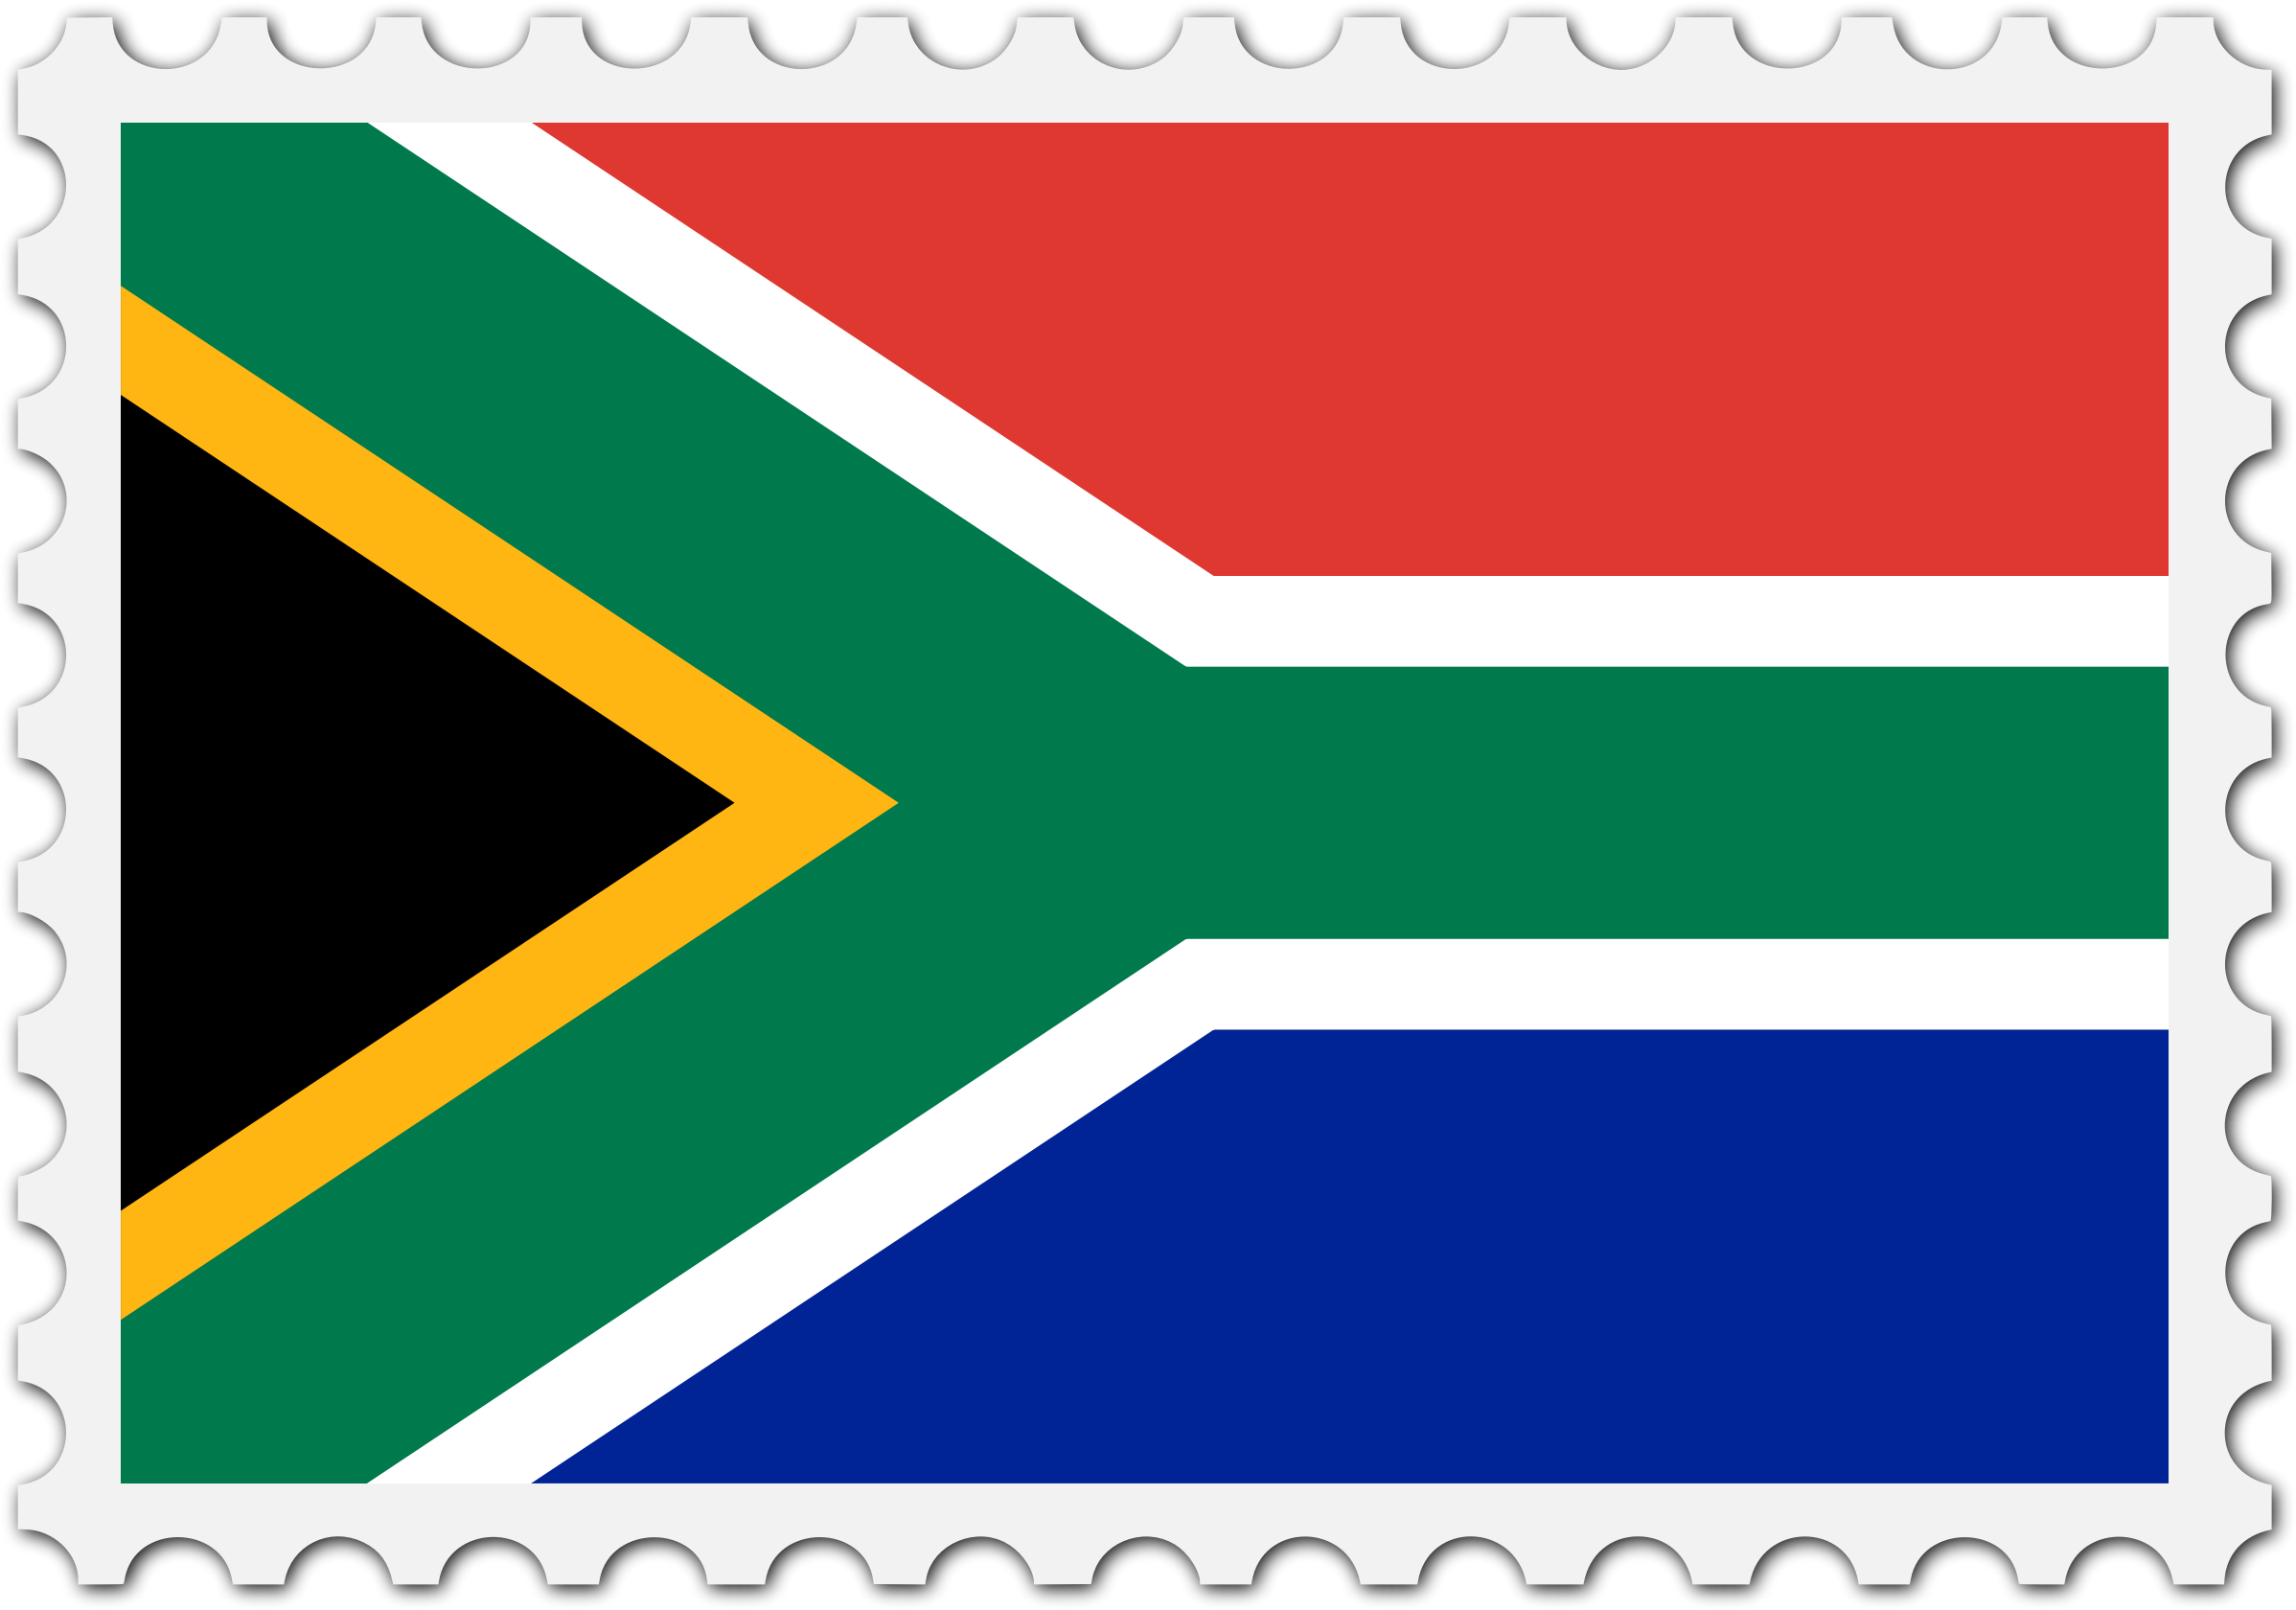 South Africa flag stamp by Firkin